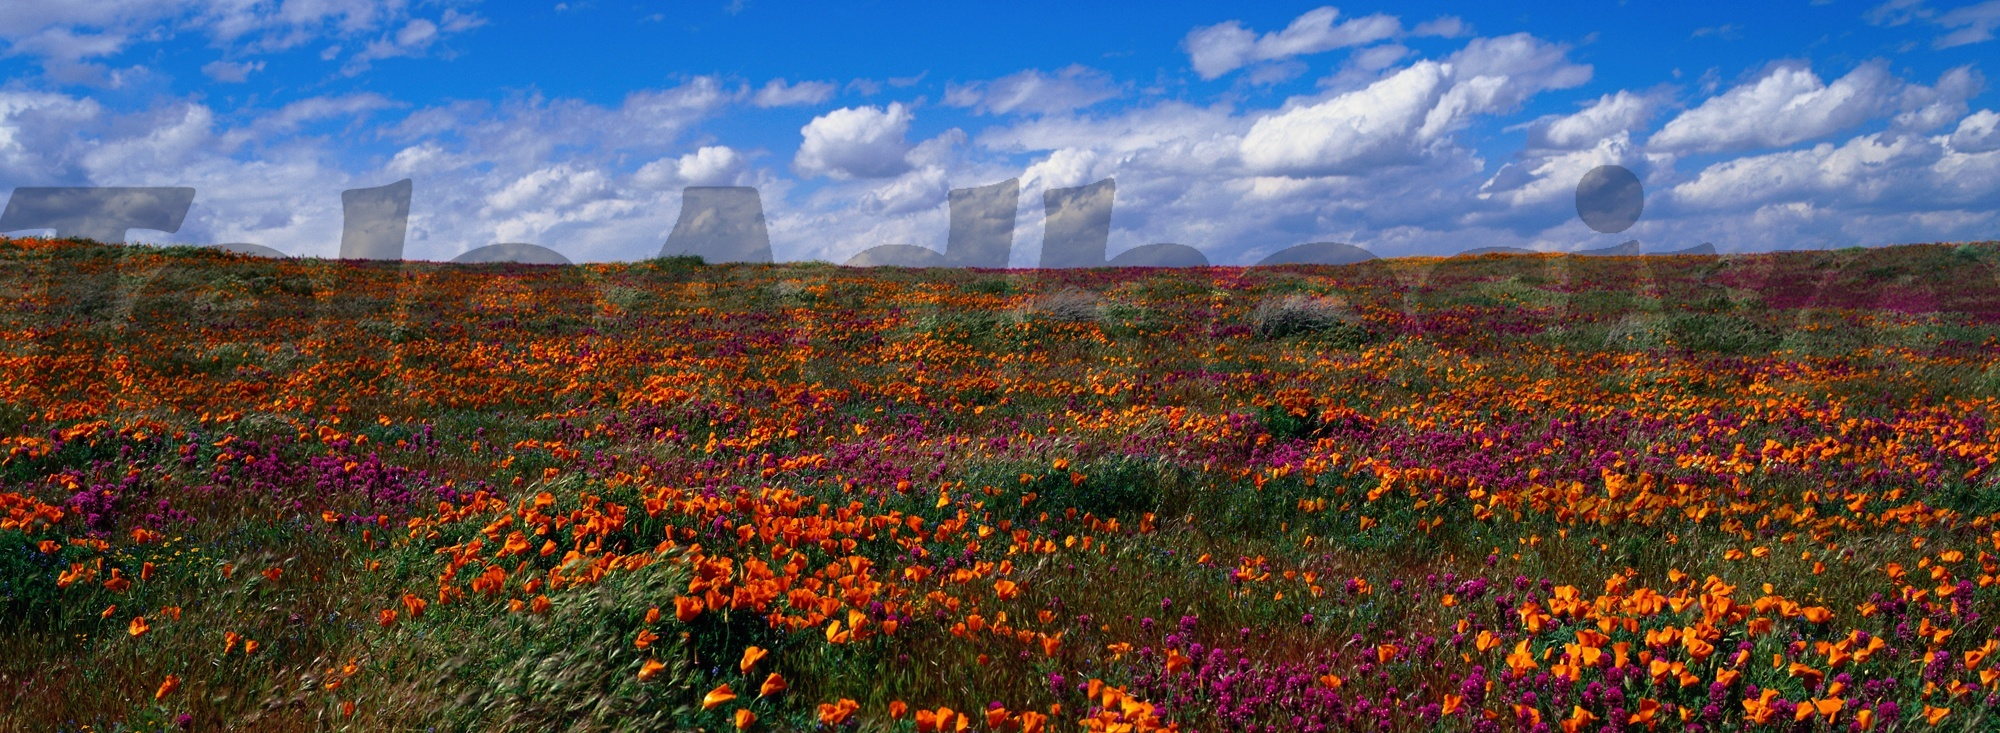 Wall Murals: Tulips fields